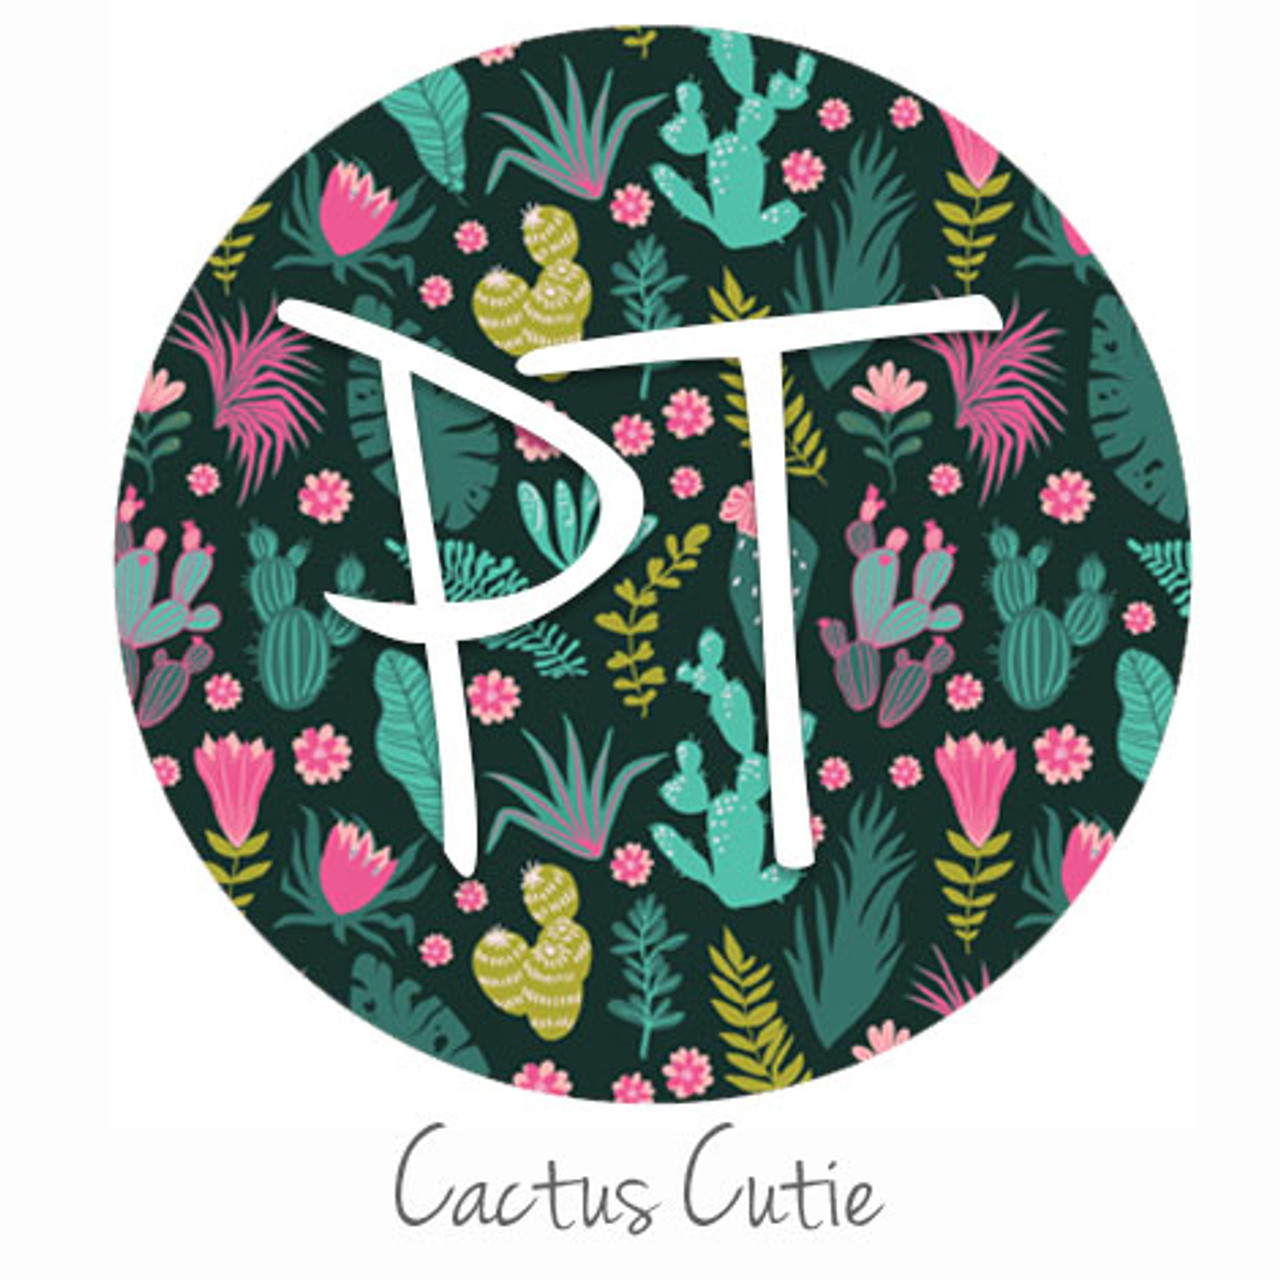 12 X12 Patterned Heat Transfer Vinyl Cactus Cutie Expressions Vinyl